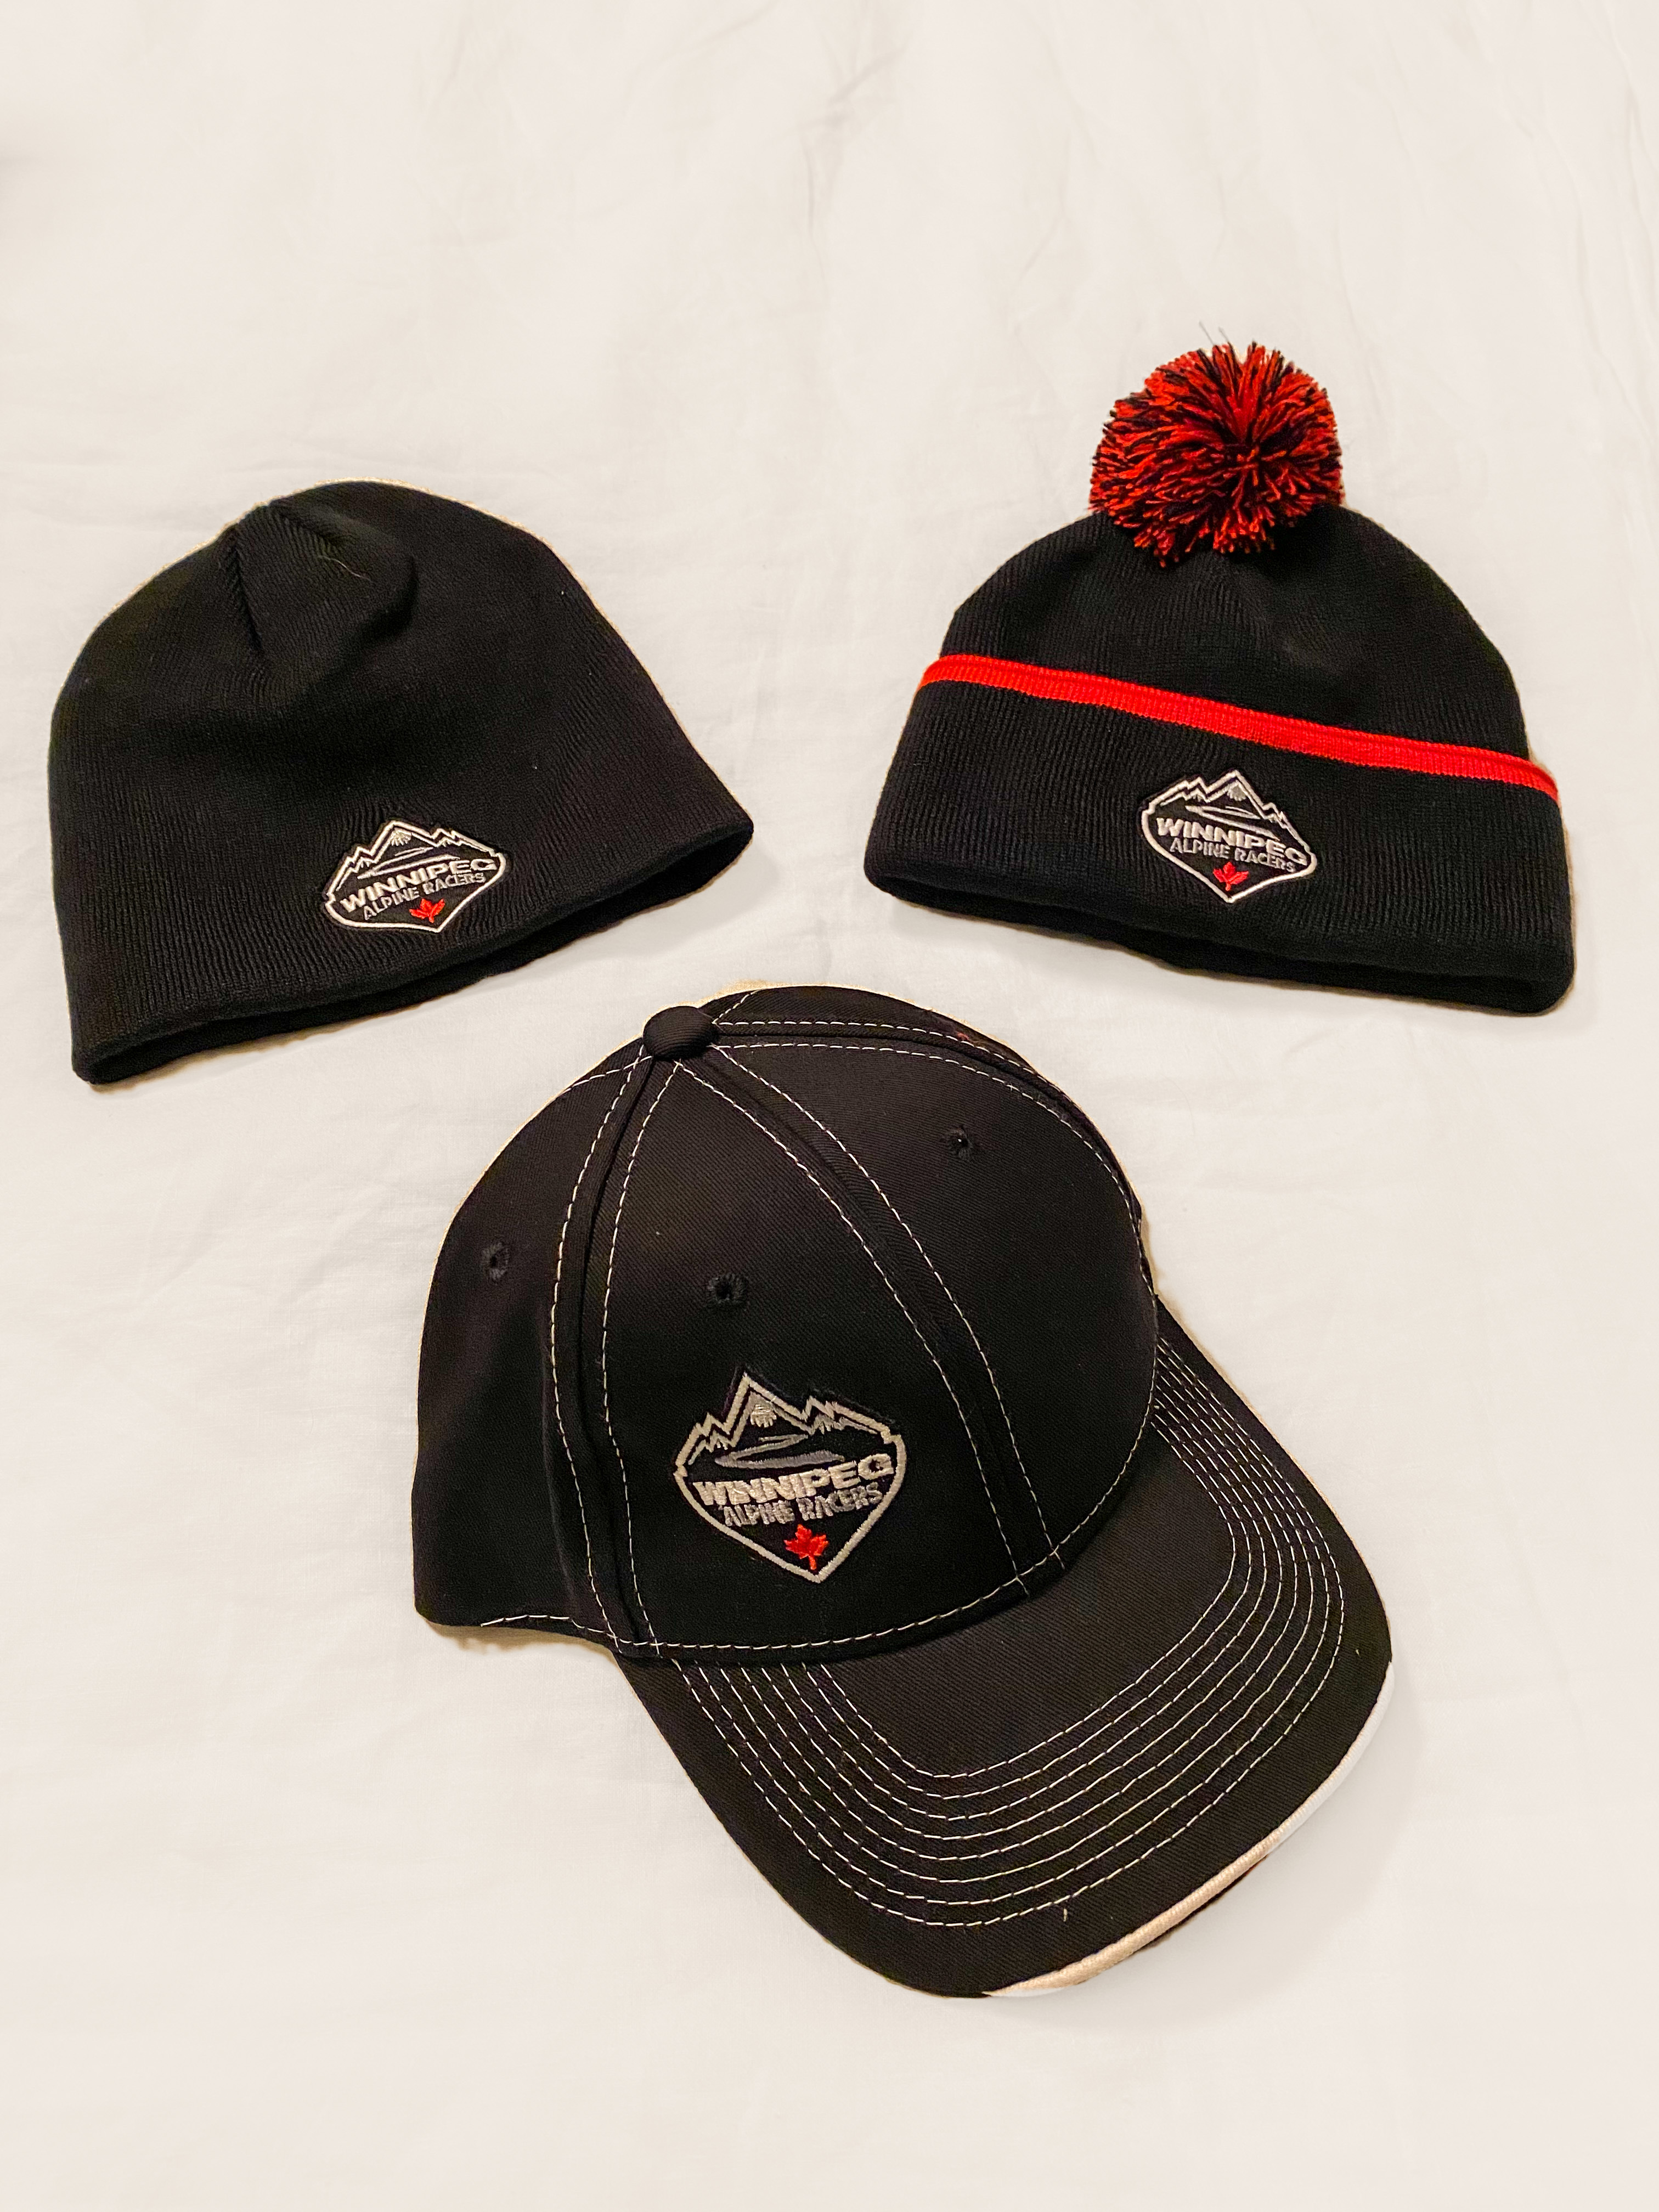 New! WAR Toques and Hats